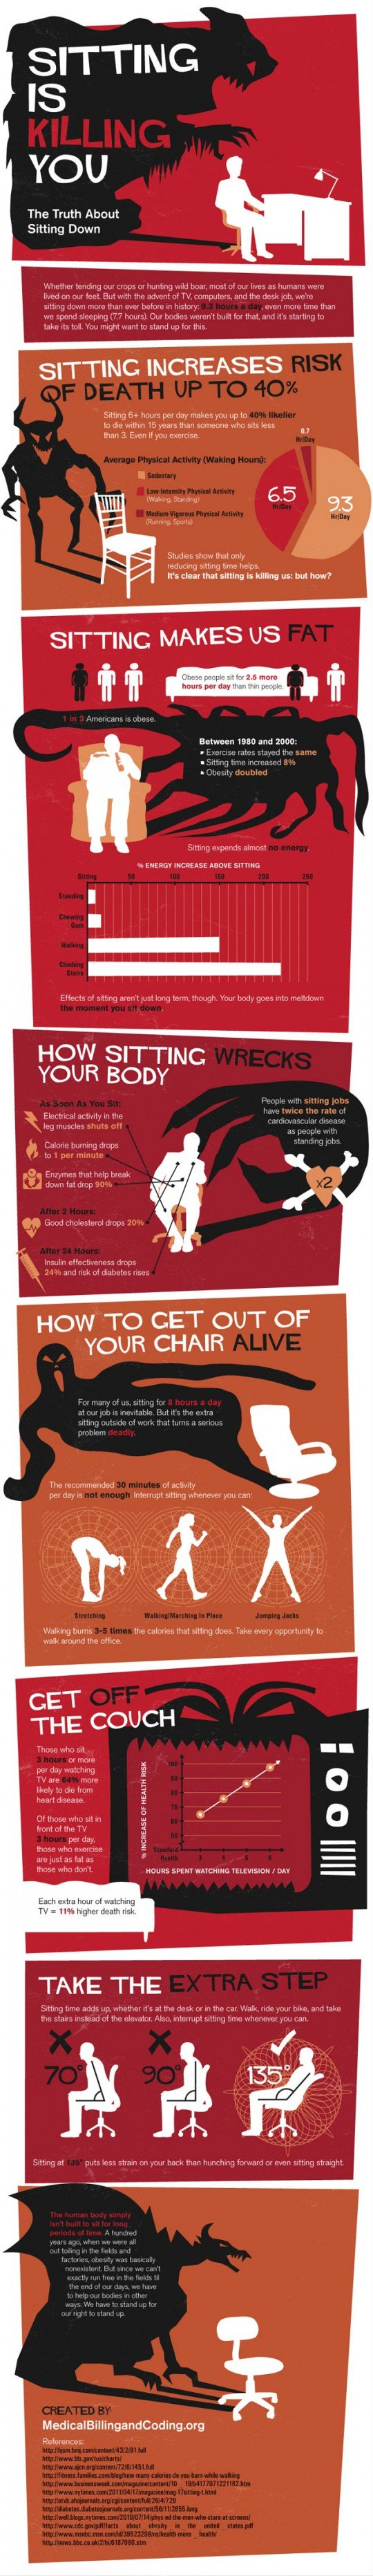 sitting-is-killing-you_50290b108464d_w540